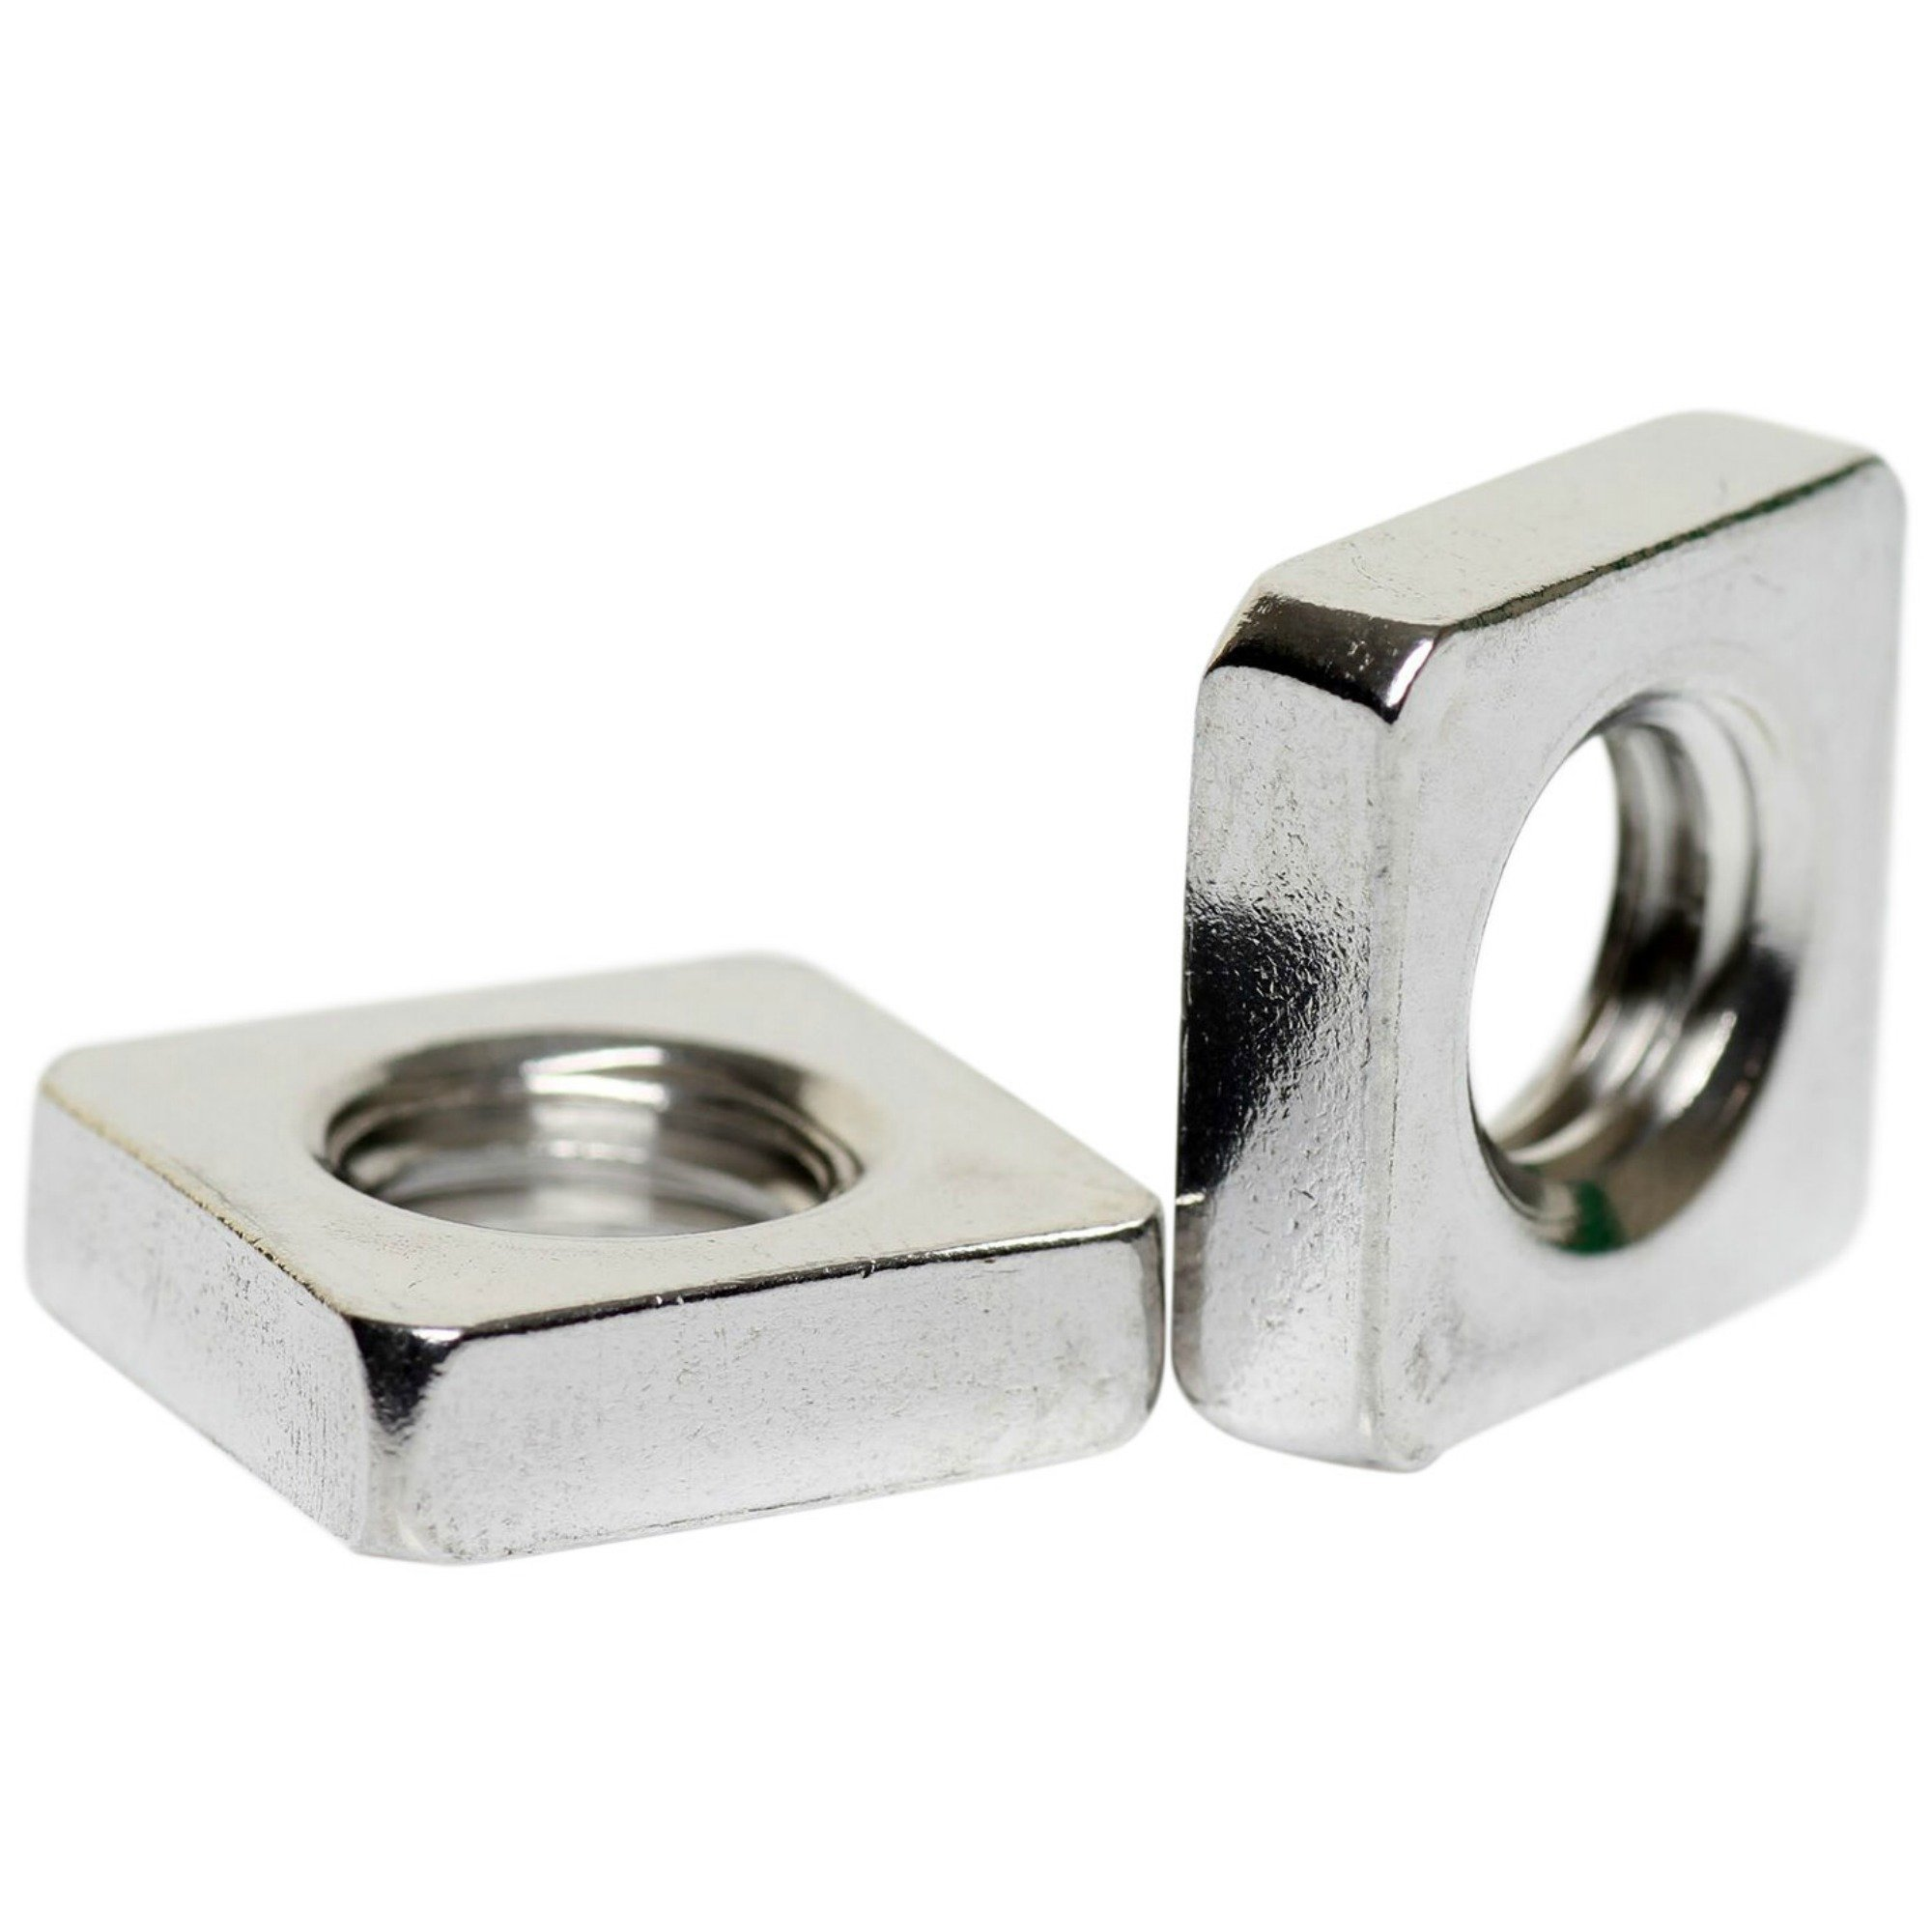 A2 Stainless Steel Square Nuts Thin Type DIN 562 M3-100 Pack by Bolt Base